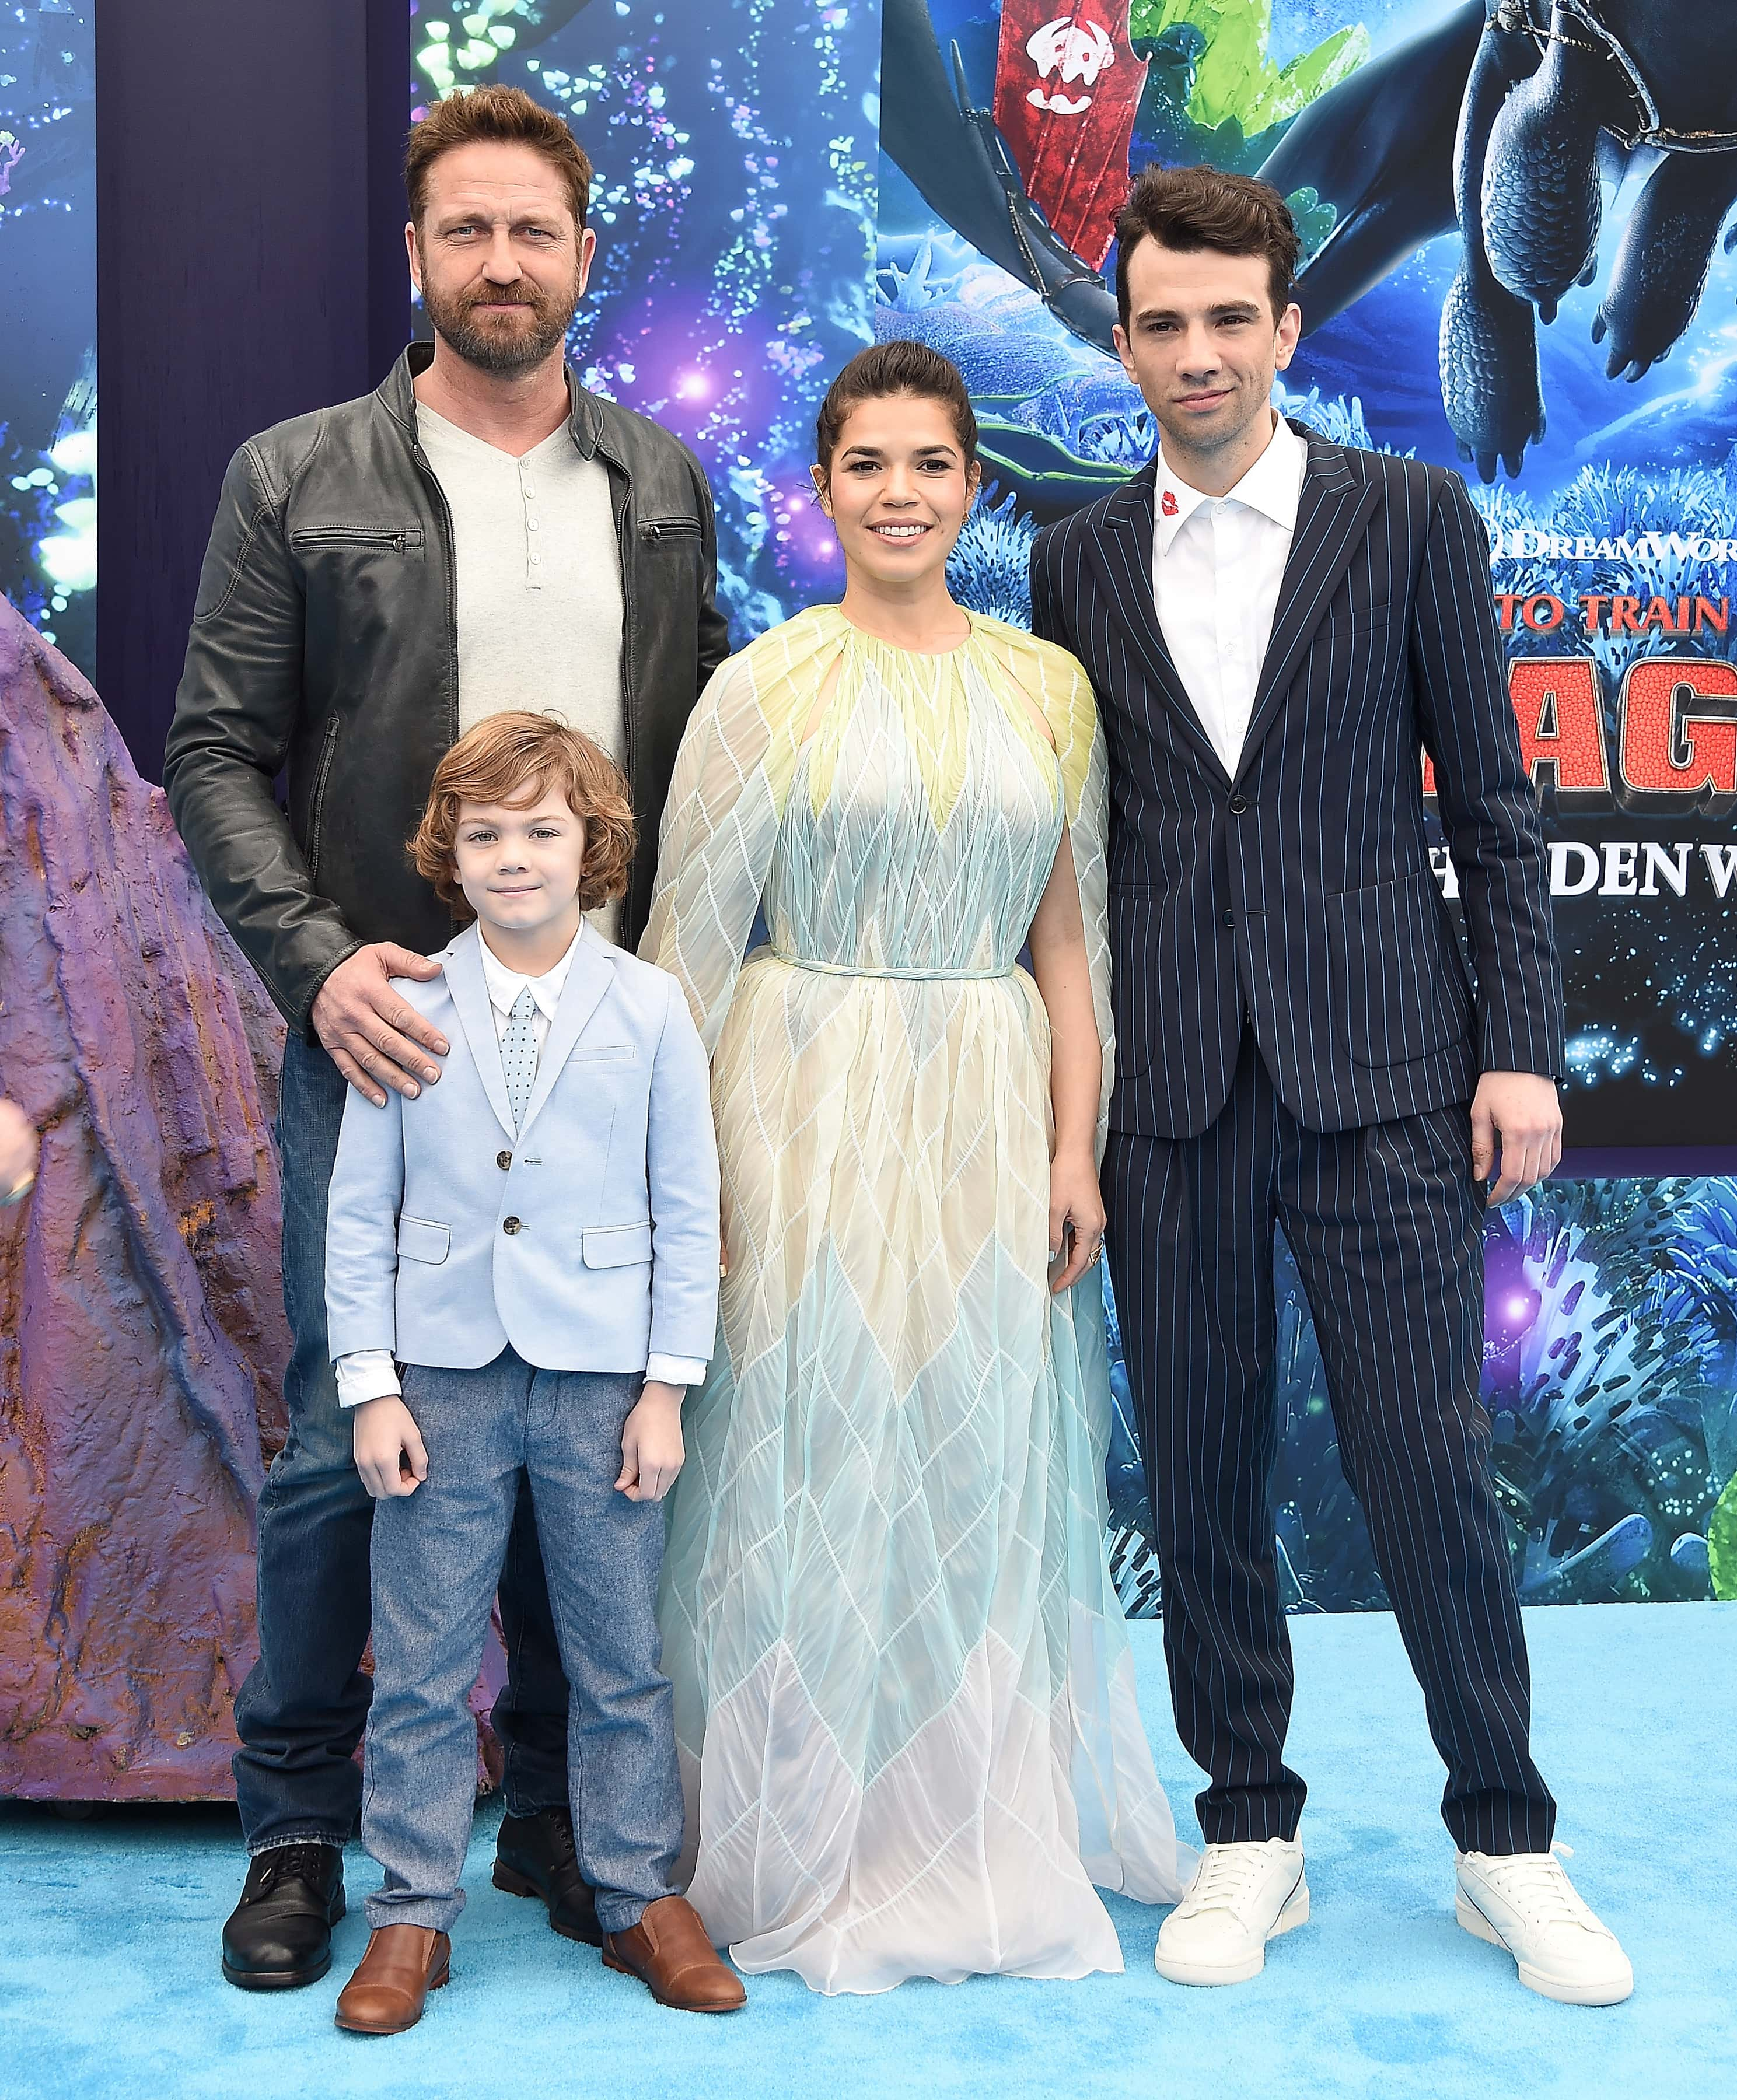 How To Train Your Dragon Homecoming Release Date Plot Cast